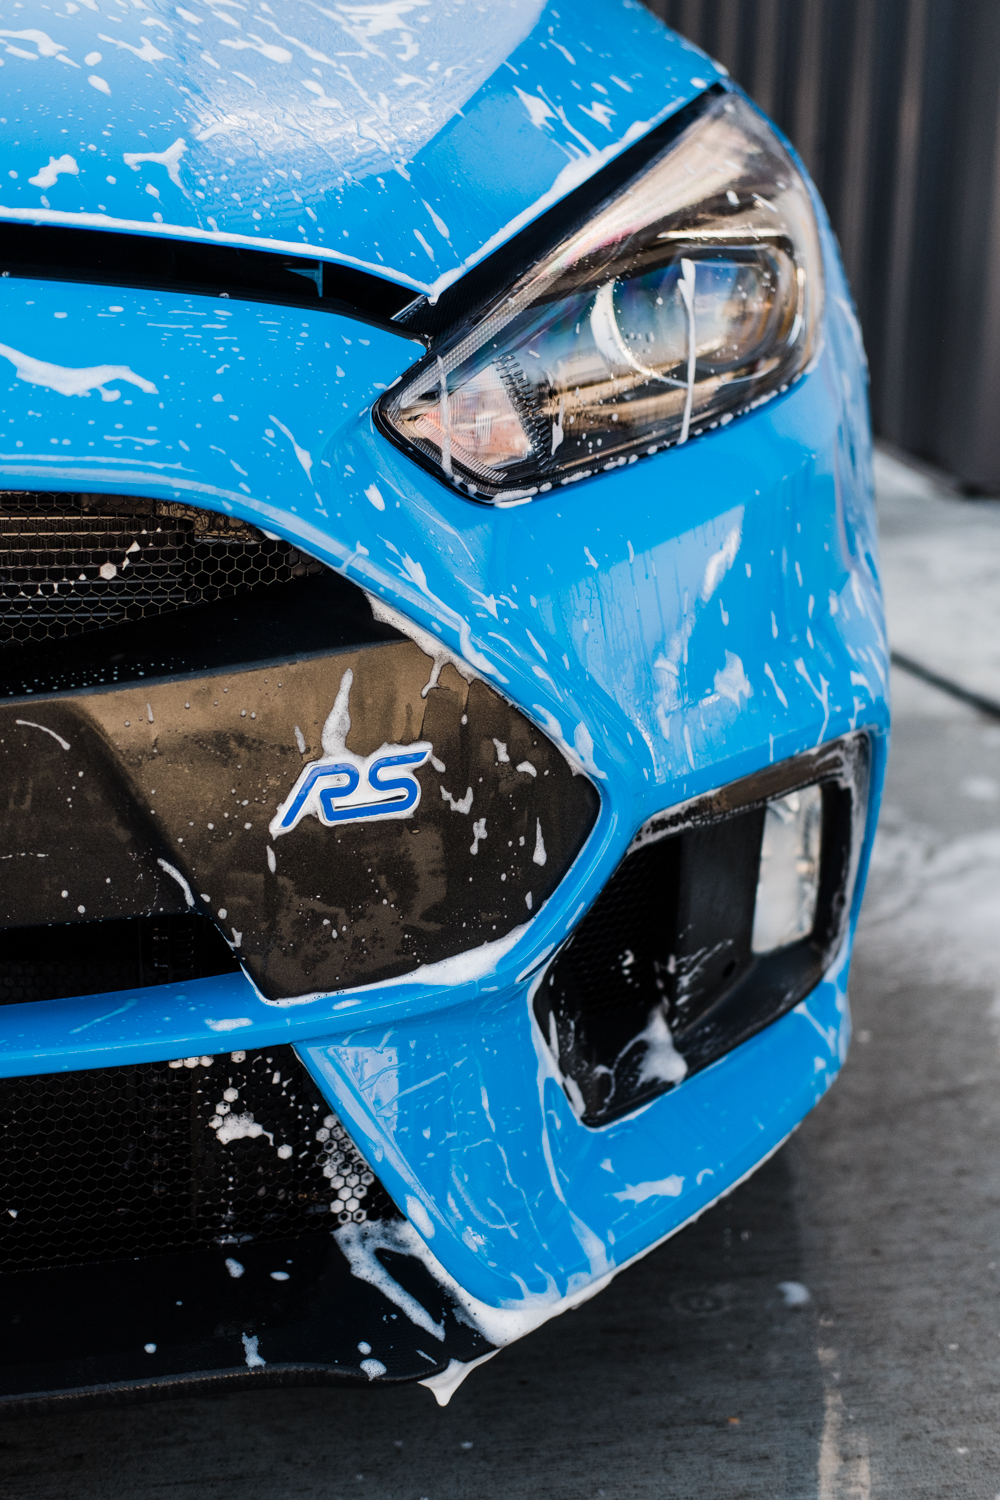 Ford Focus RS-XPEL Ultimate Paint Protection Film-Car Wash-Car Detailing-Paint Protection Film-Clear Bra-Ford Performance-110.jpg